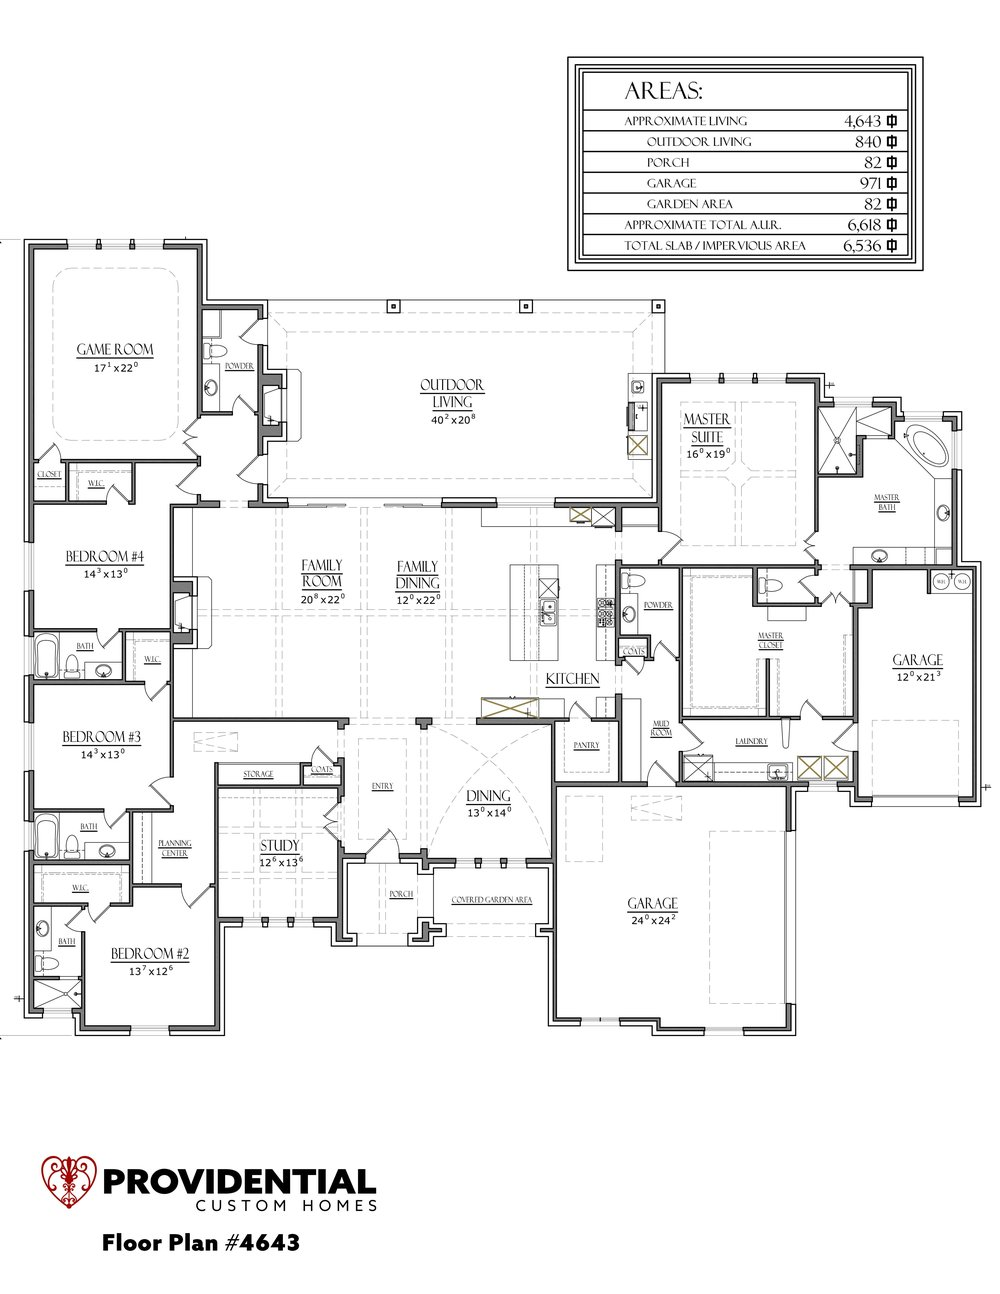 The FLOOR PLAN #4643.jpg